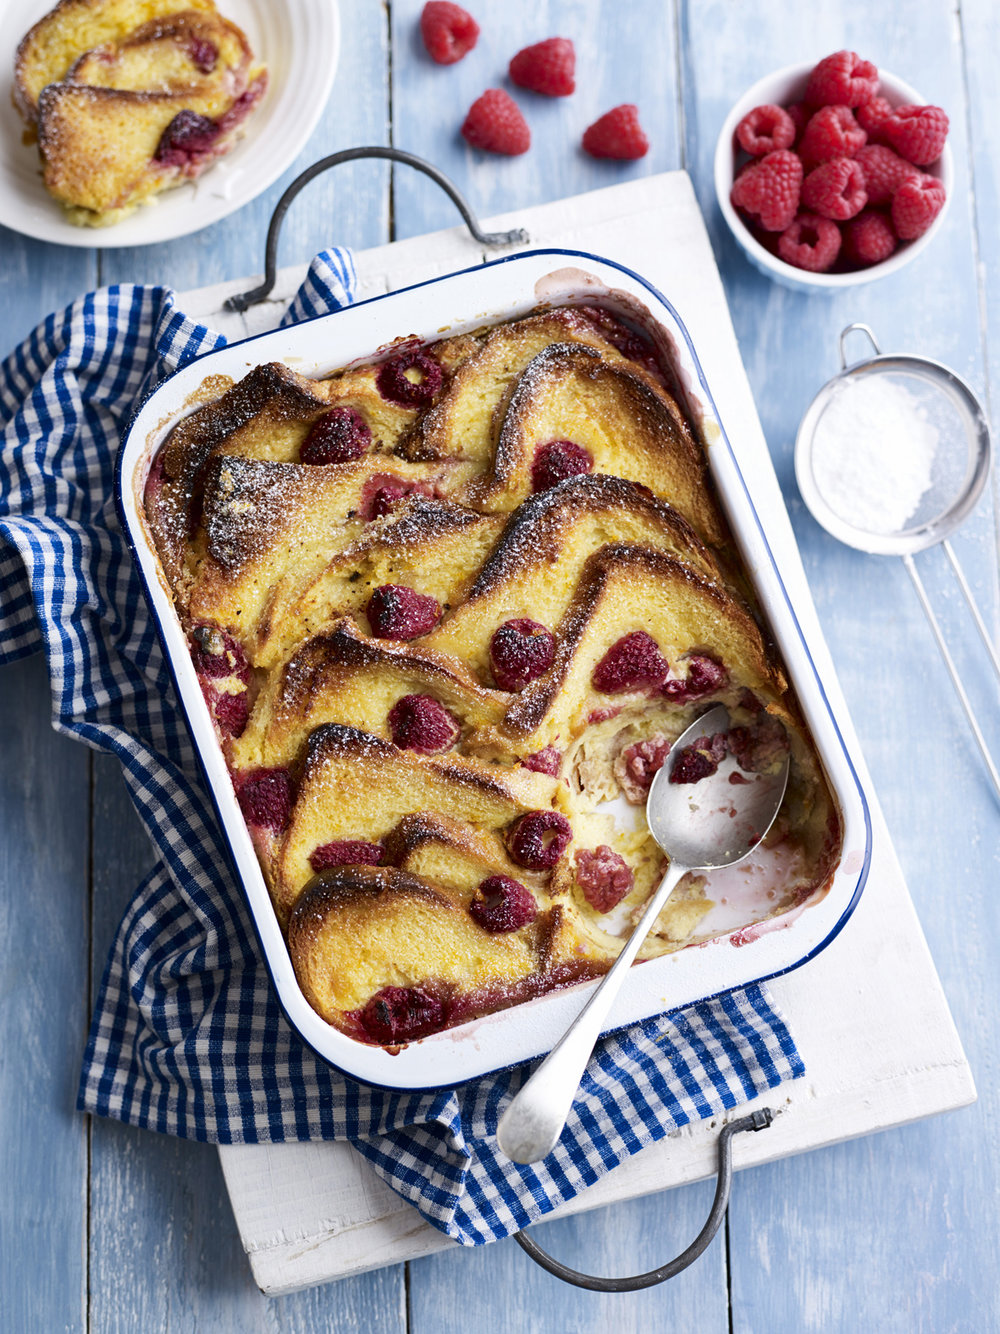 BerryWorld raspberry brioche pudding - This pudding has a sharp fruity flavour from the raspberries with lovely sweet brioche. Try with ice cream for added indulgence.